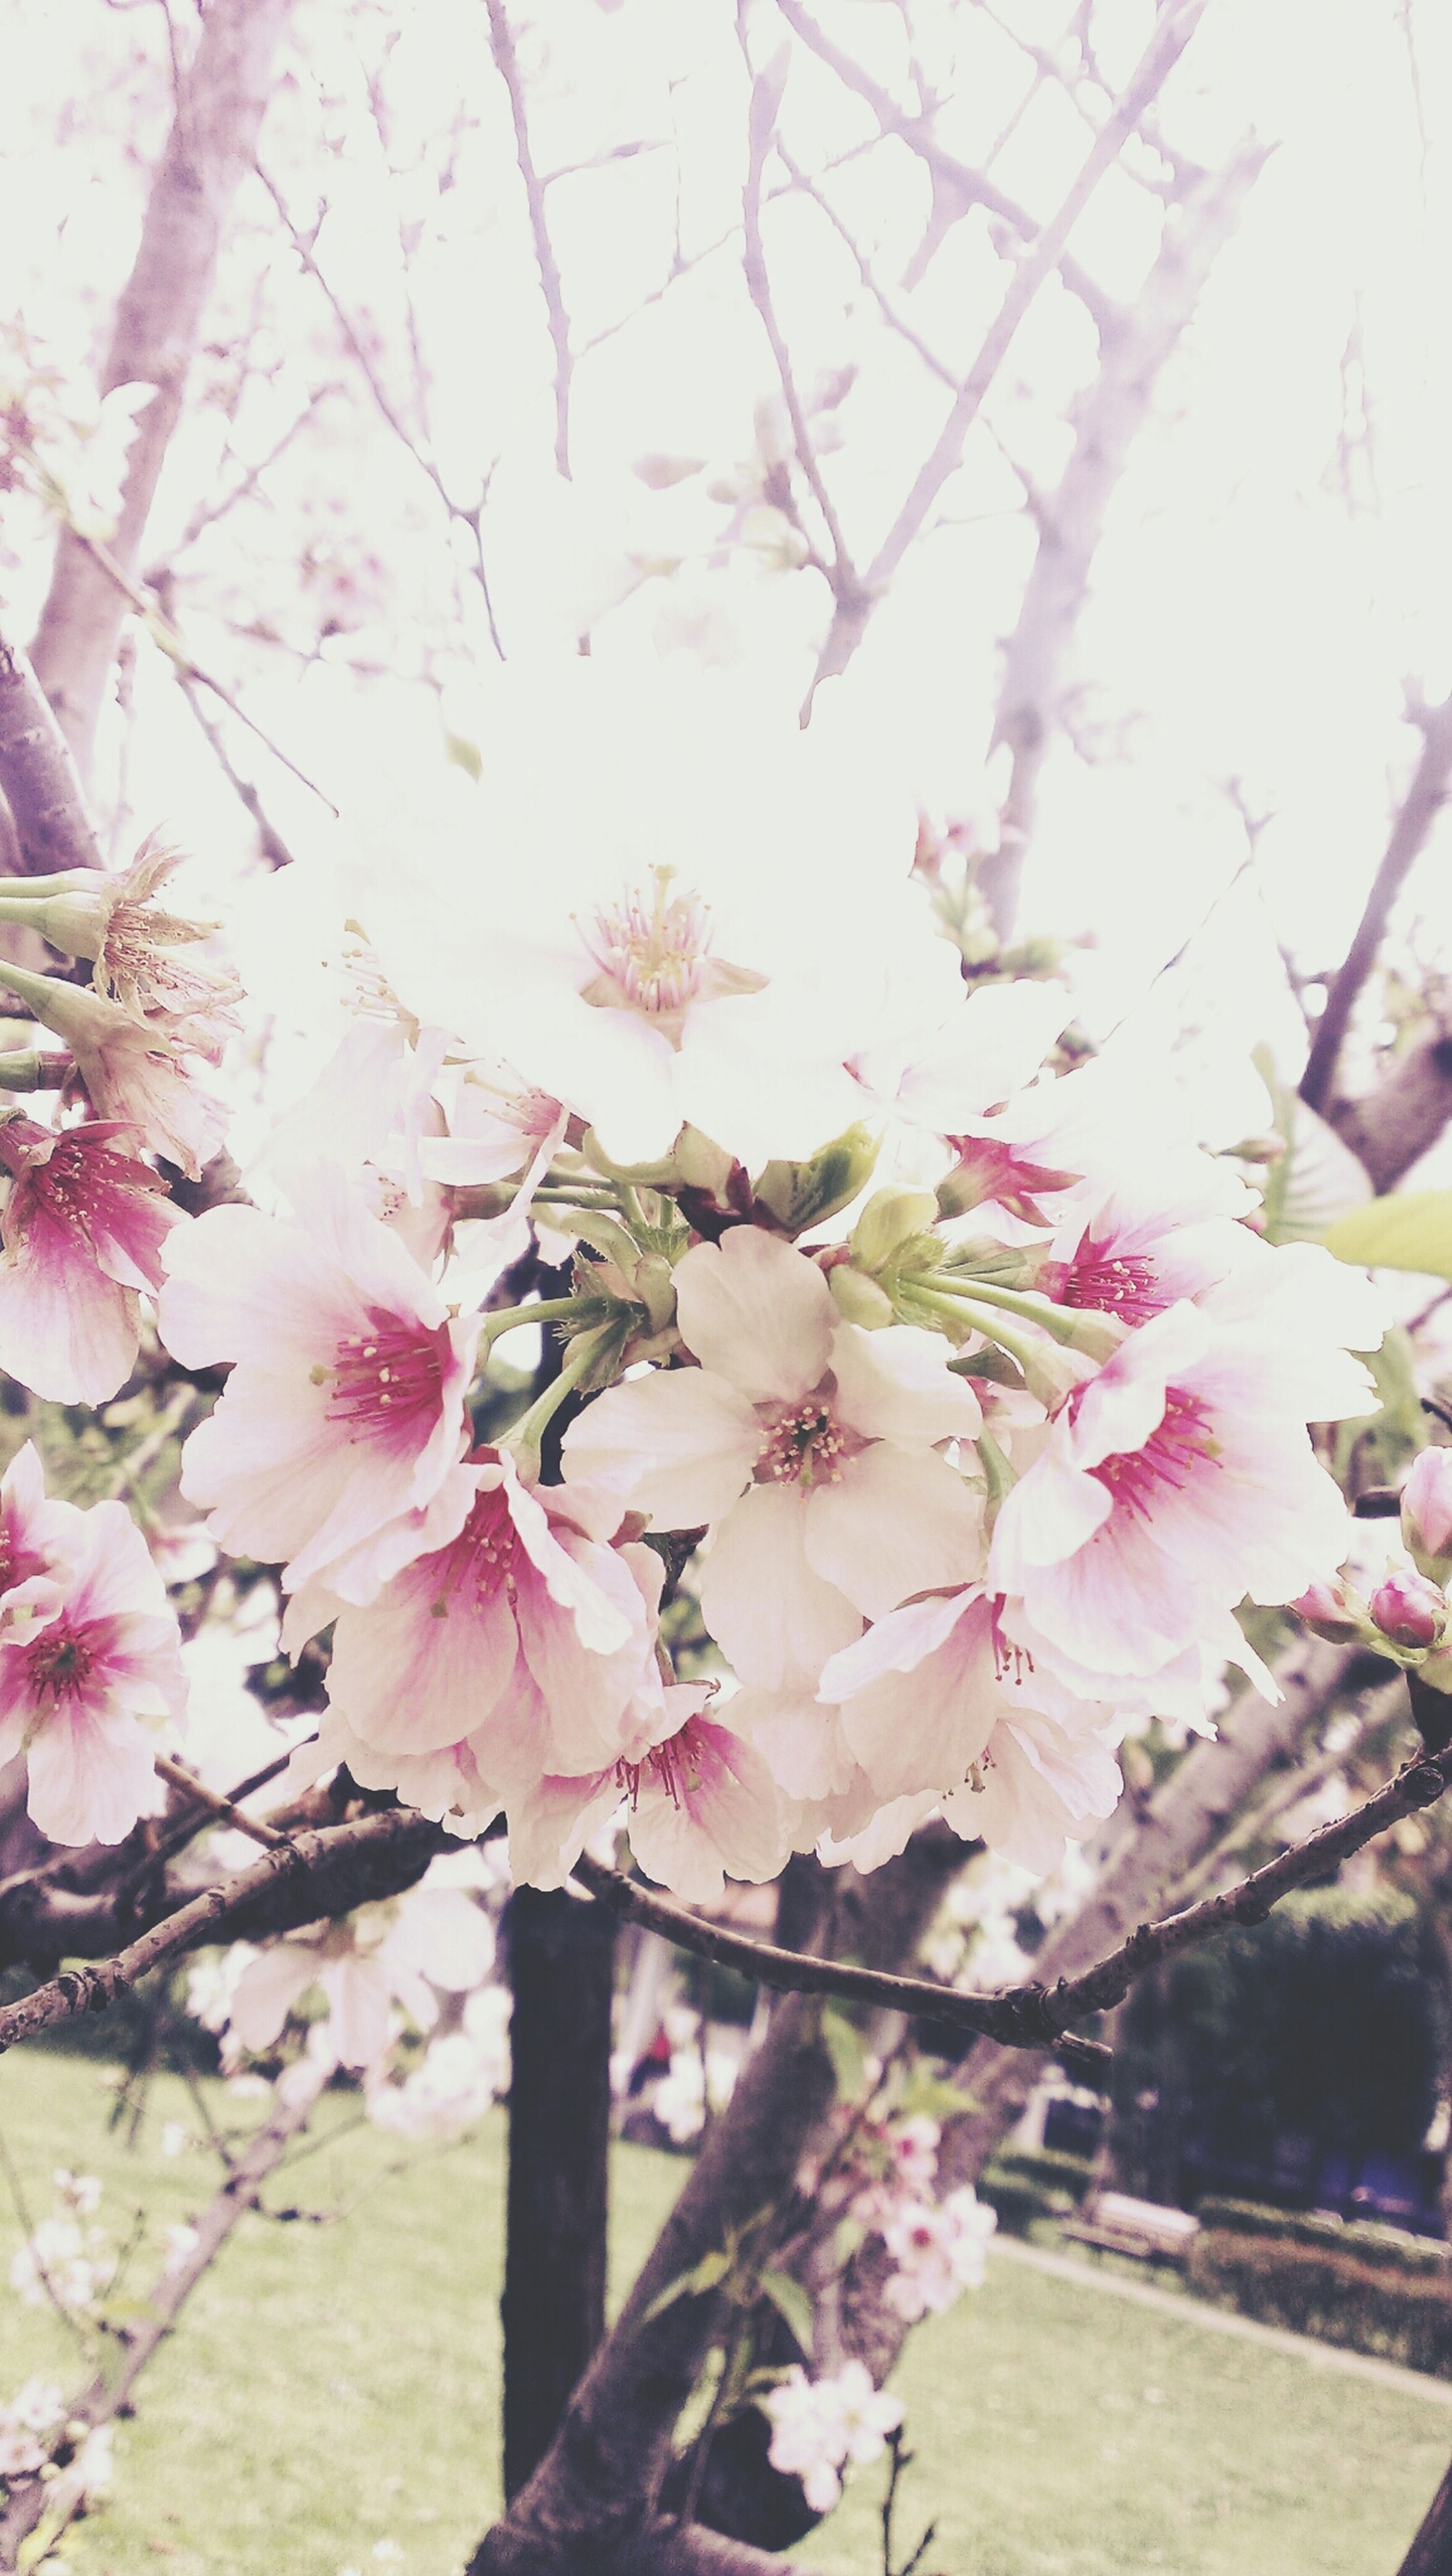 flower, freshness, fragility, branch, pink color, tree, growth, beauty in nature, blossom, cherry blossom, petal, nature, cherry tree, in bloom, blooming, springtime, low angle view, flower head, close-up, focus on foreground